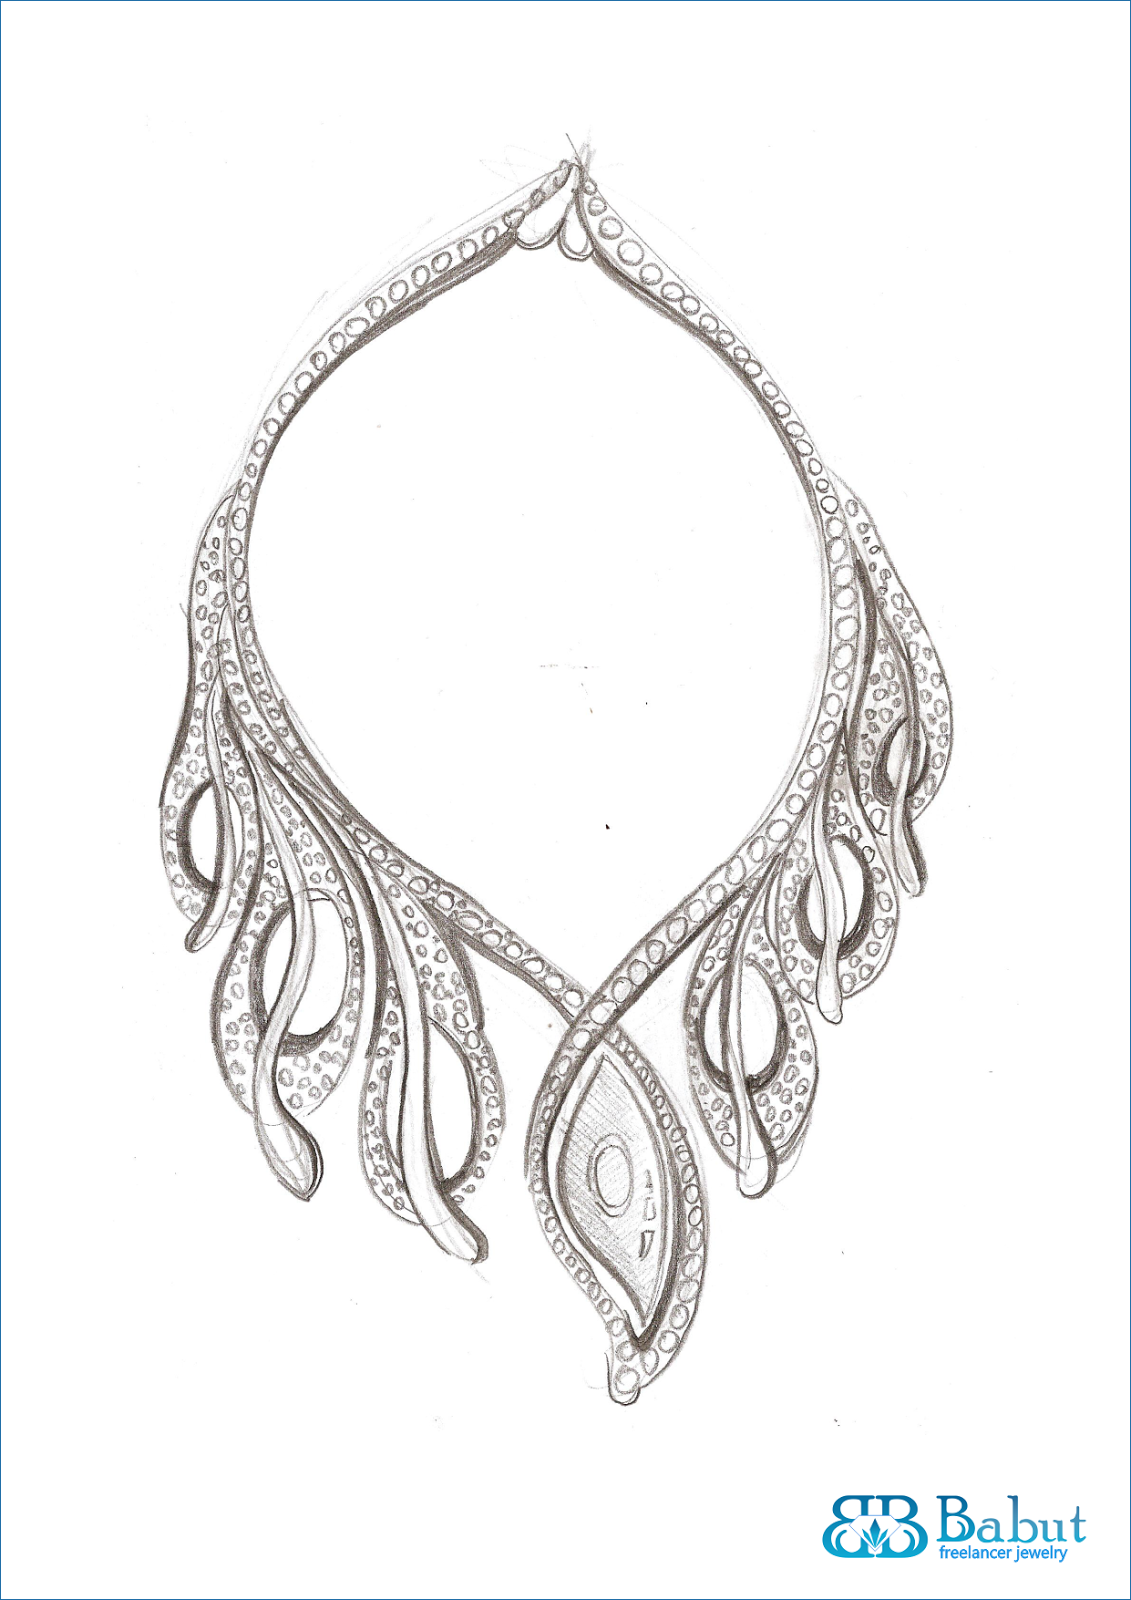 Sketch Jewelry - Babut Florin - Valentin: august 2014